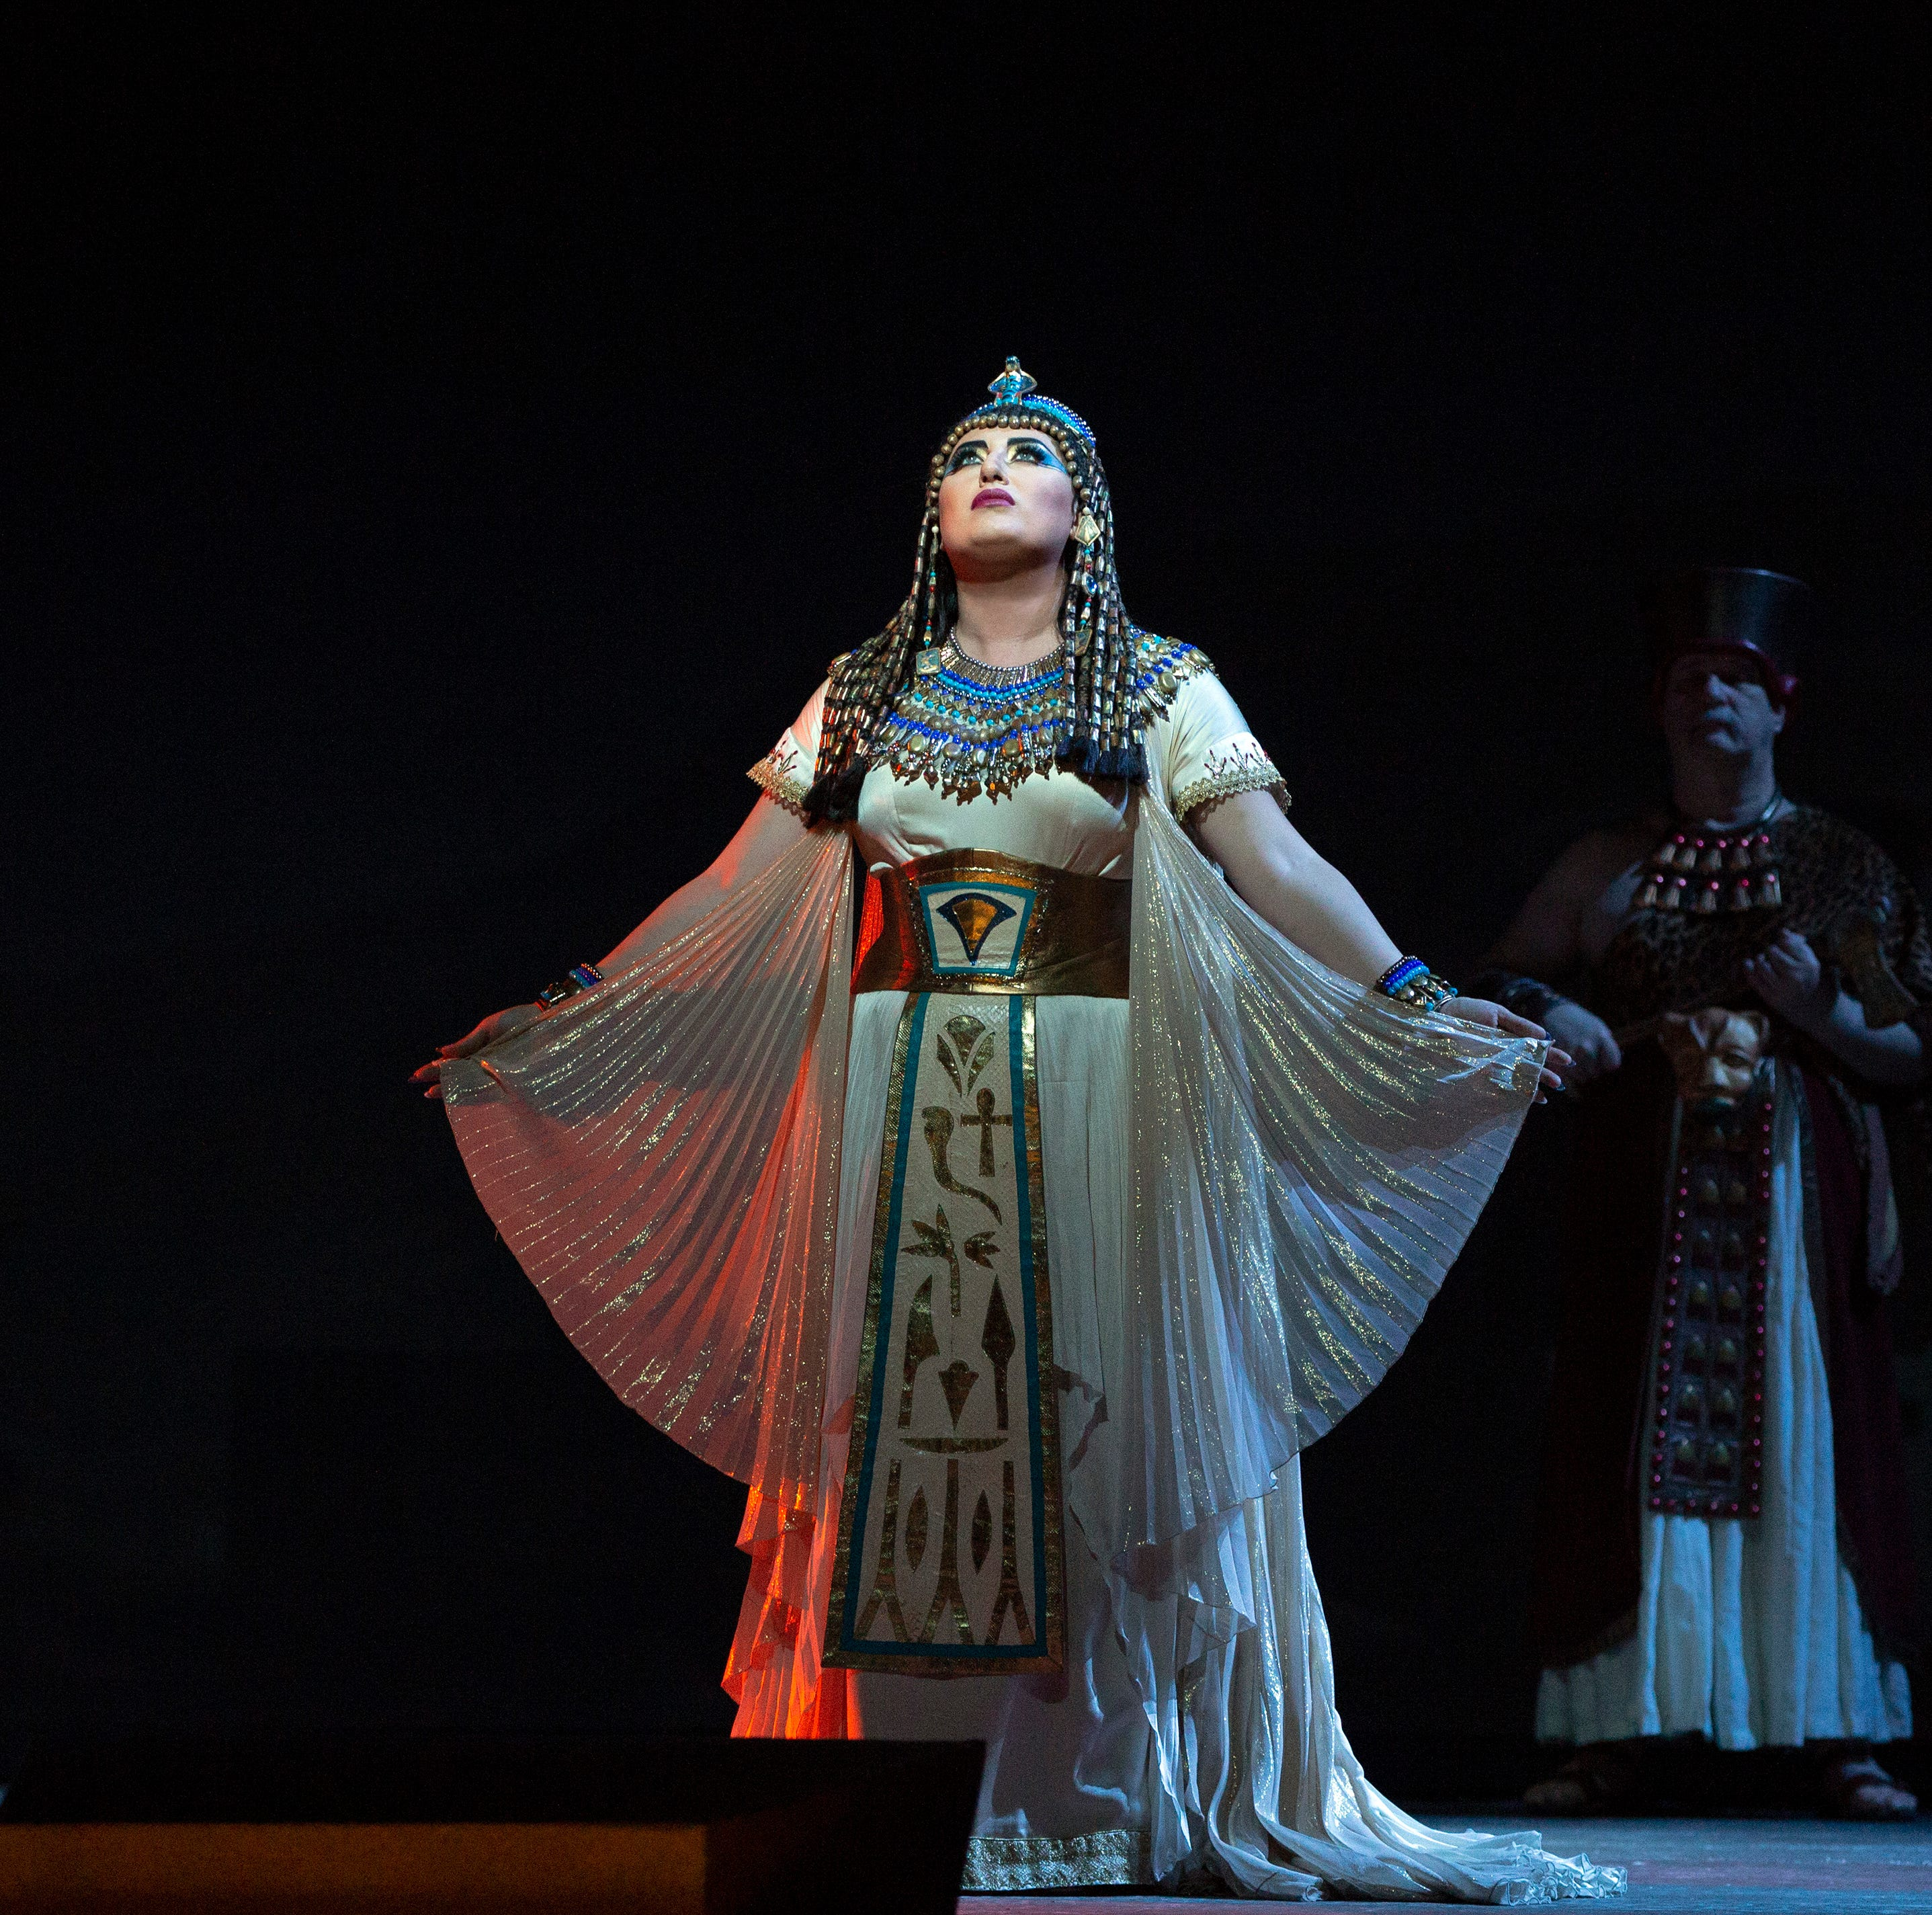 Metropolitan Opera comes to Southern Utah via the big screen